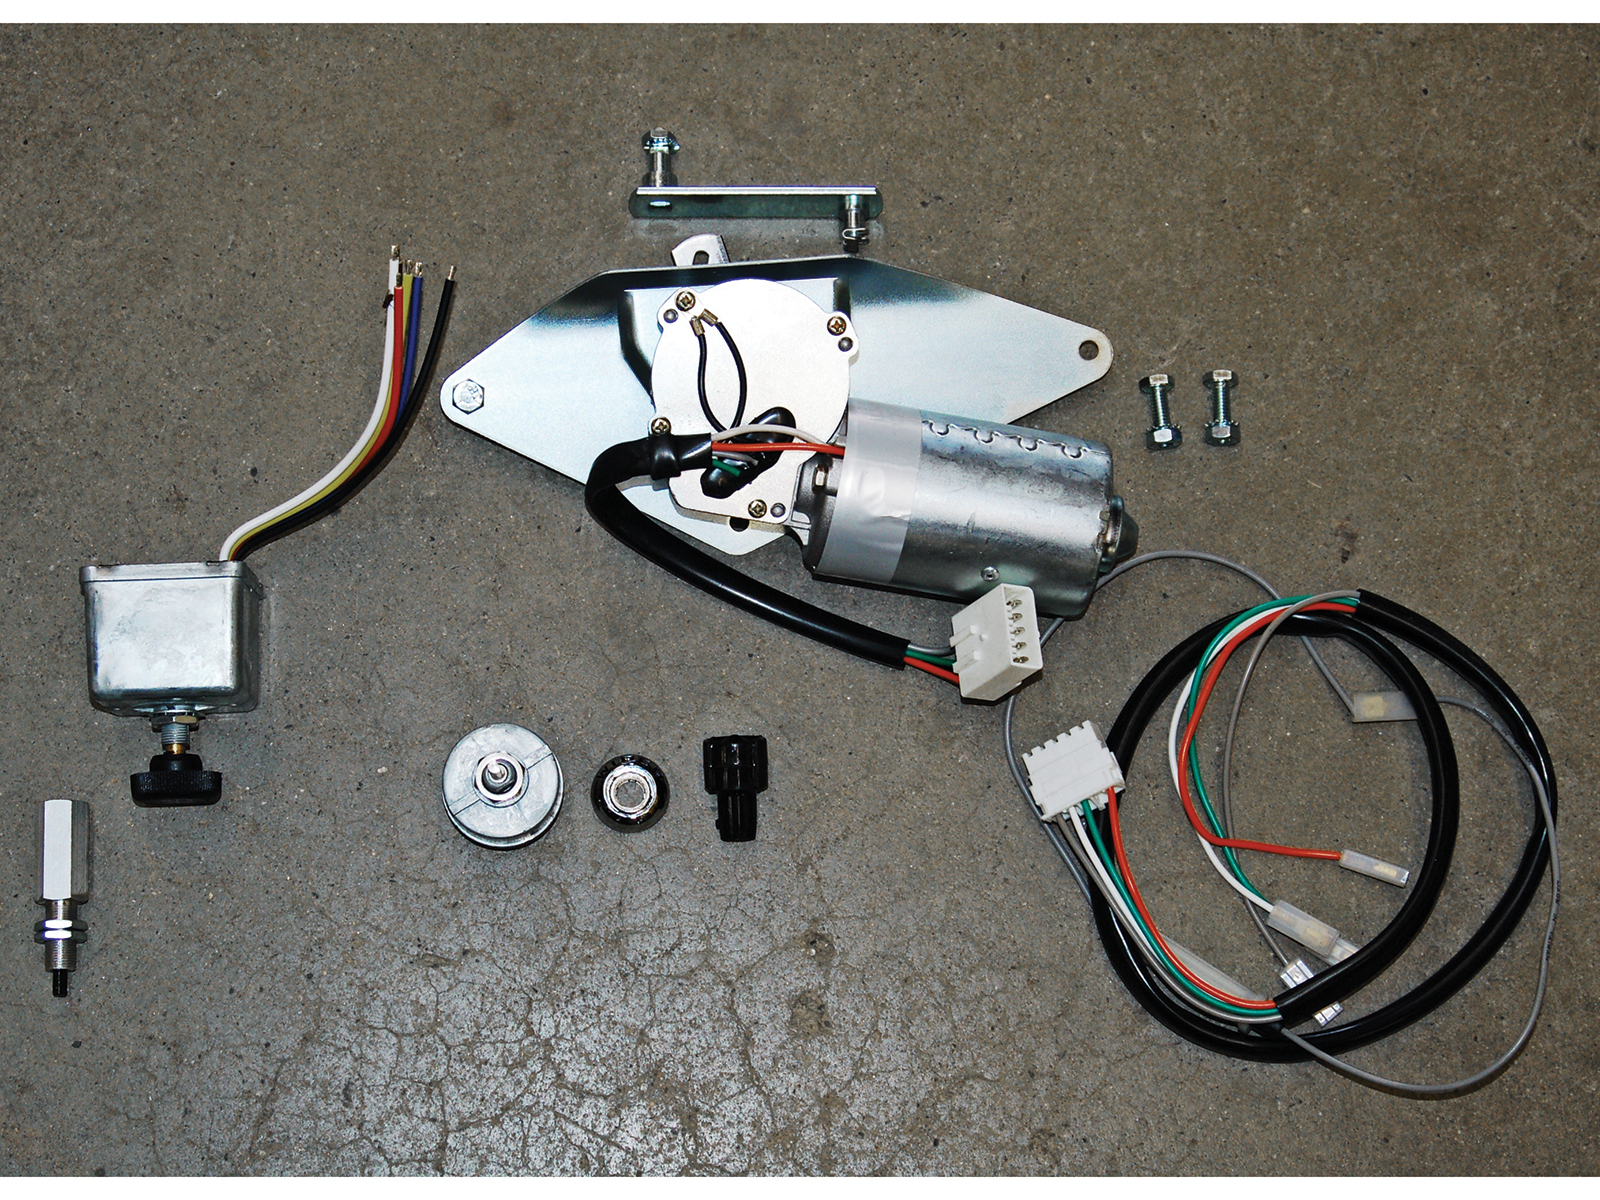 wiper-motor-mounting-plate Window Hot Rod Wiring Diagram on hot rod fuel system diagram, hot rod distributor, hot rod honda, hot rod headlight, hot rod automatic transmission, hot rod radiator, hot rod engine diagram, harness diagram, street rod turn signal diagram, hot rod carburetor, wire diagram, hot spot diagram, hot rod motor, hot rod switch, hot rod transformer, hot rod piston, hot rod brakes, hot rod cable, hot rod cover, hot rod parts list,